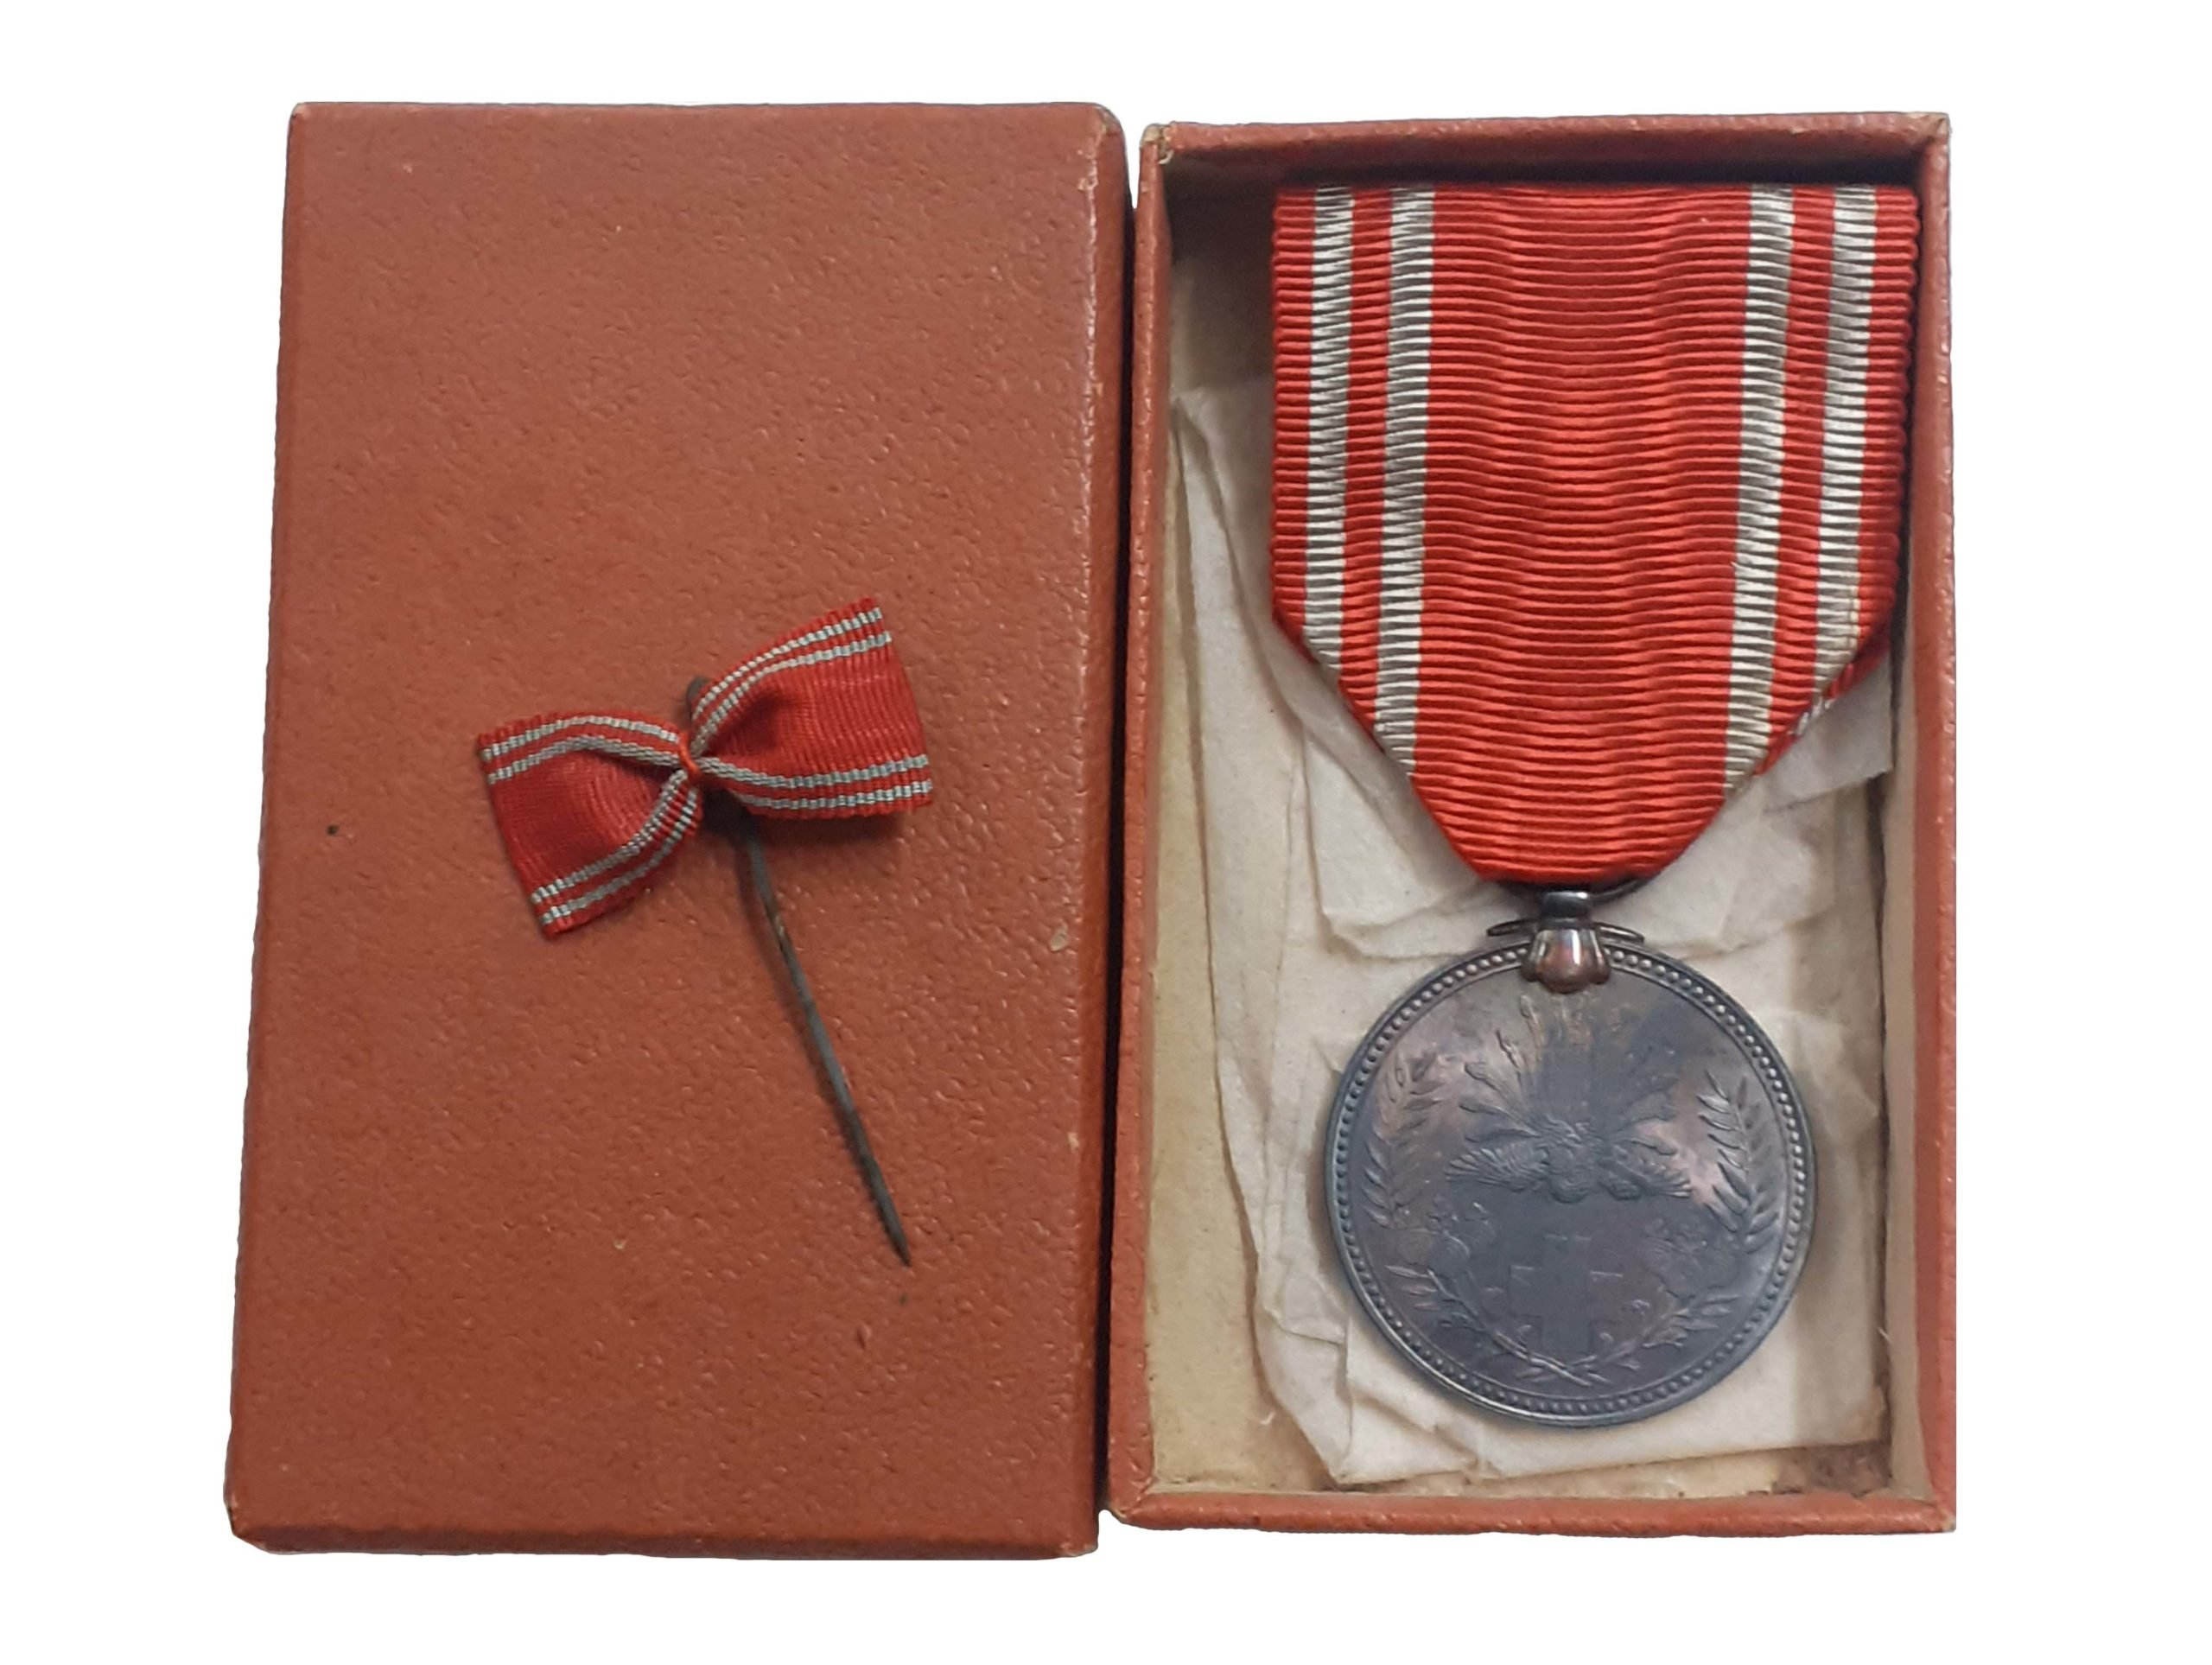 Japanese Red Cross Member Medal in Wartime Card case of Issue